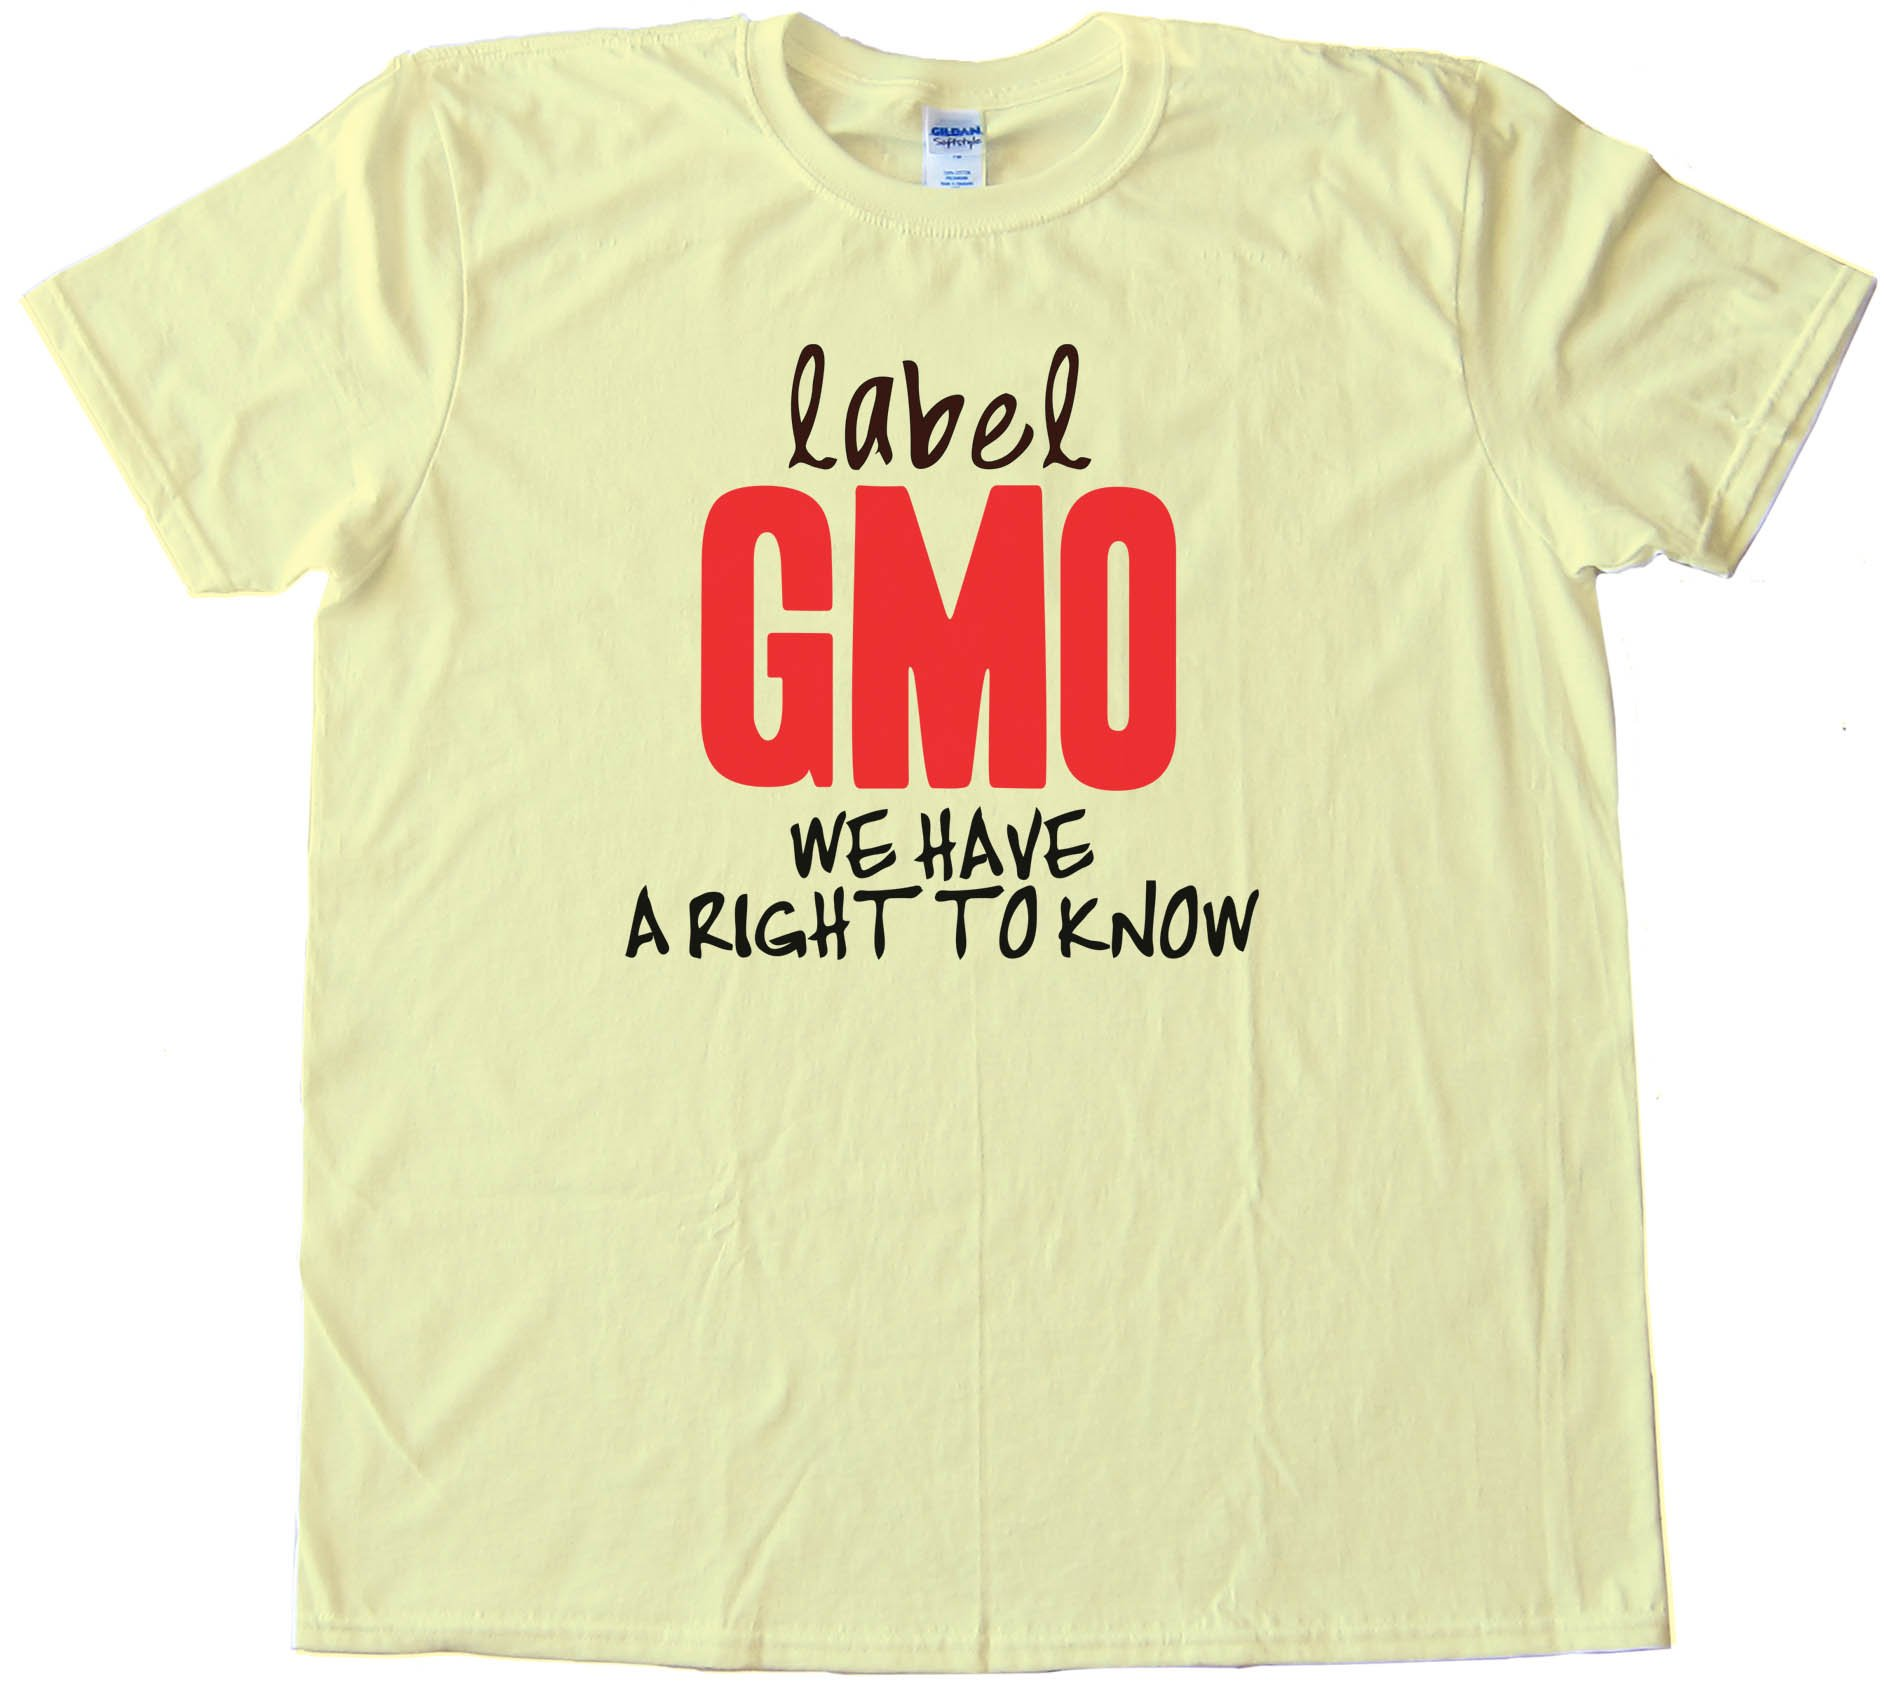 Label Gmo - We Have A Right To Know - Tee Shirt